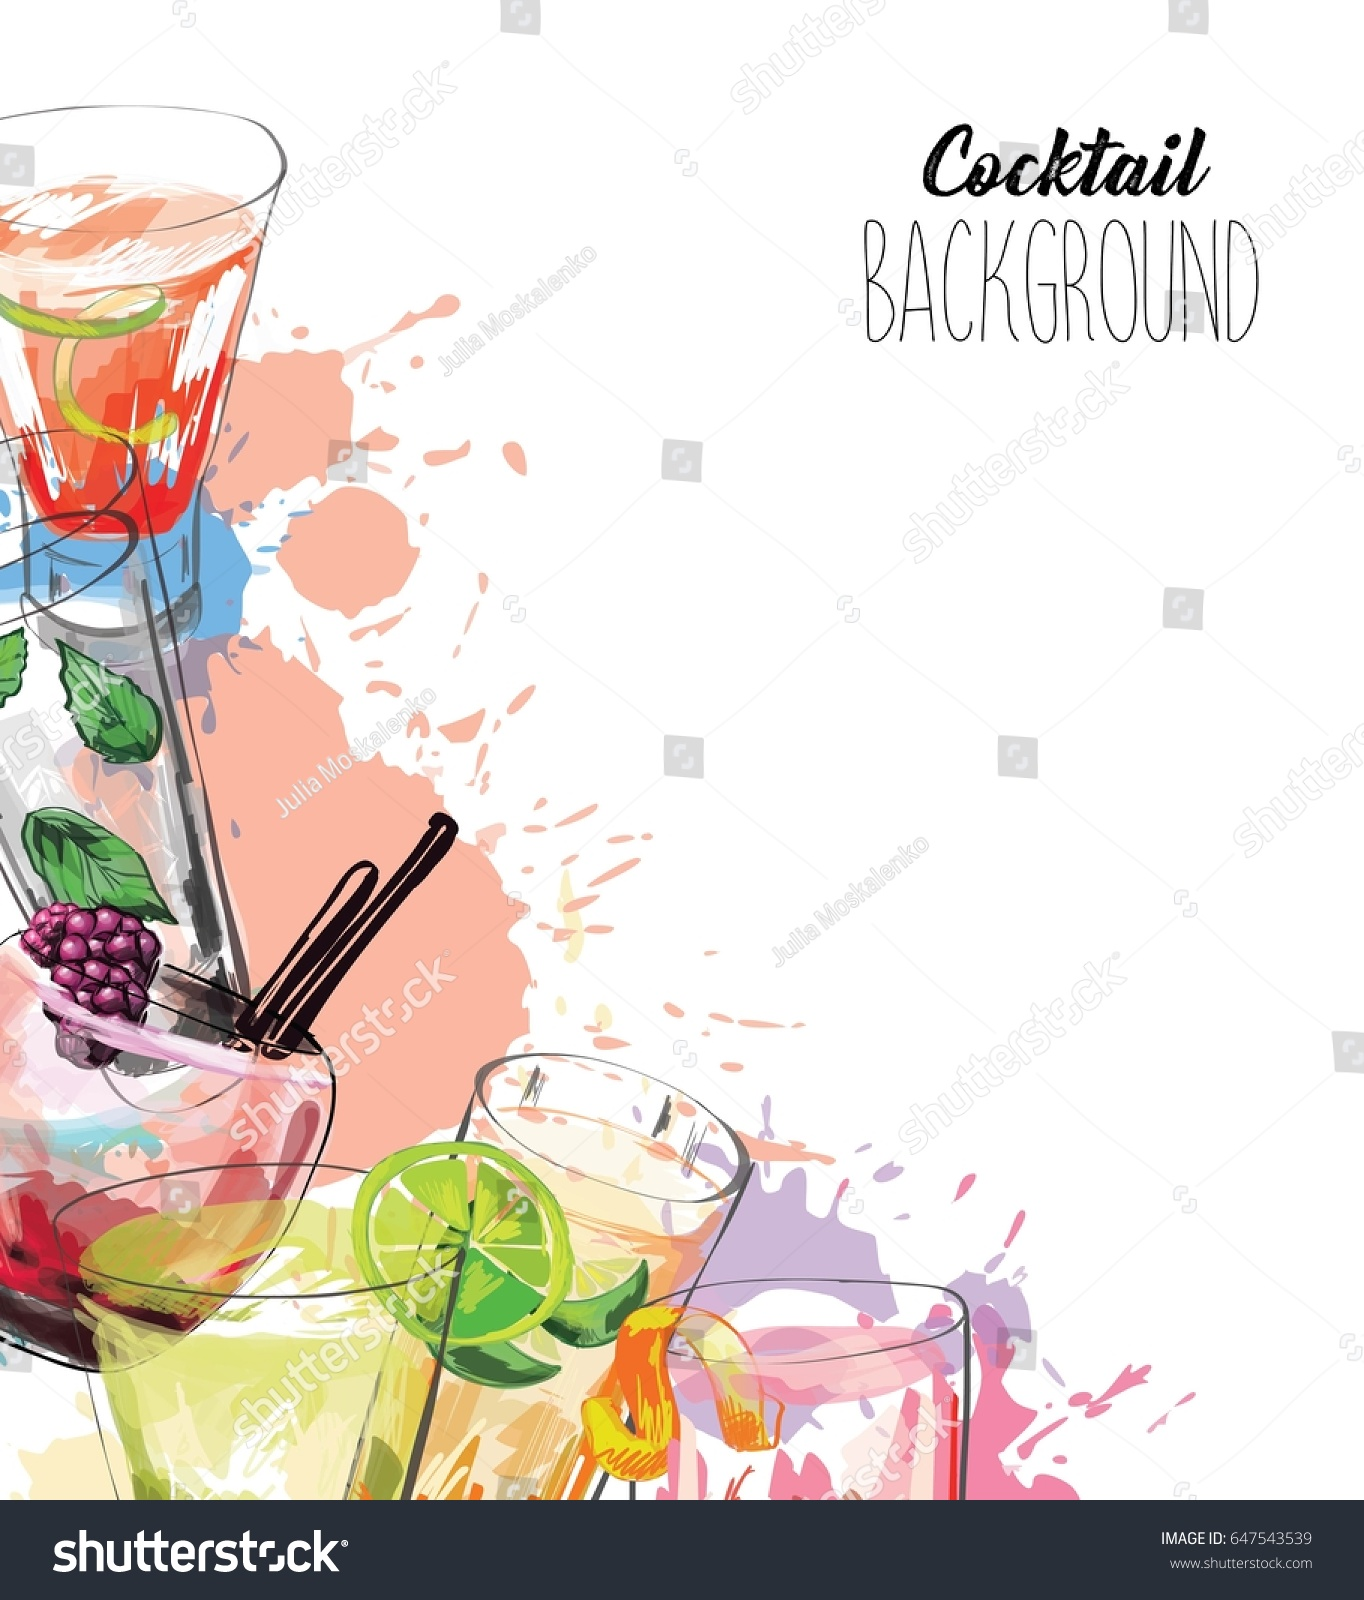 Drink Menu Background Design